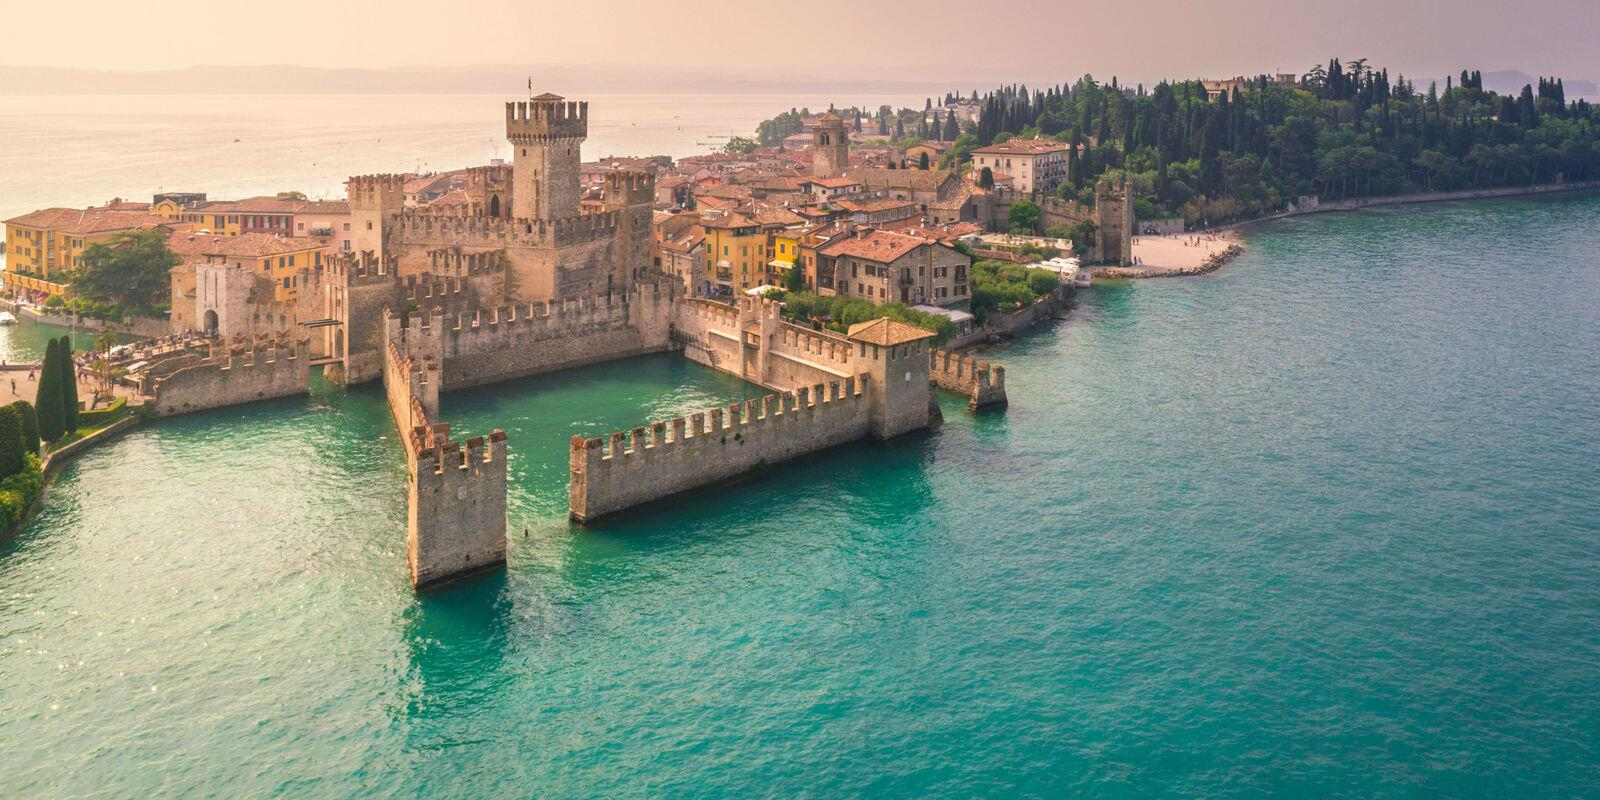 Sailing, visit of the castle of Sirmione, 5-star lunch and good wine